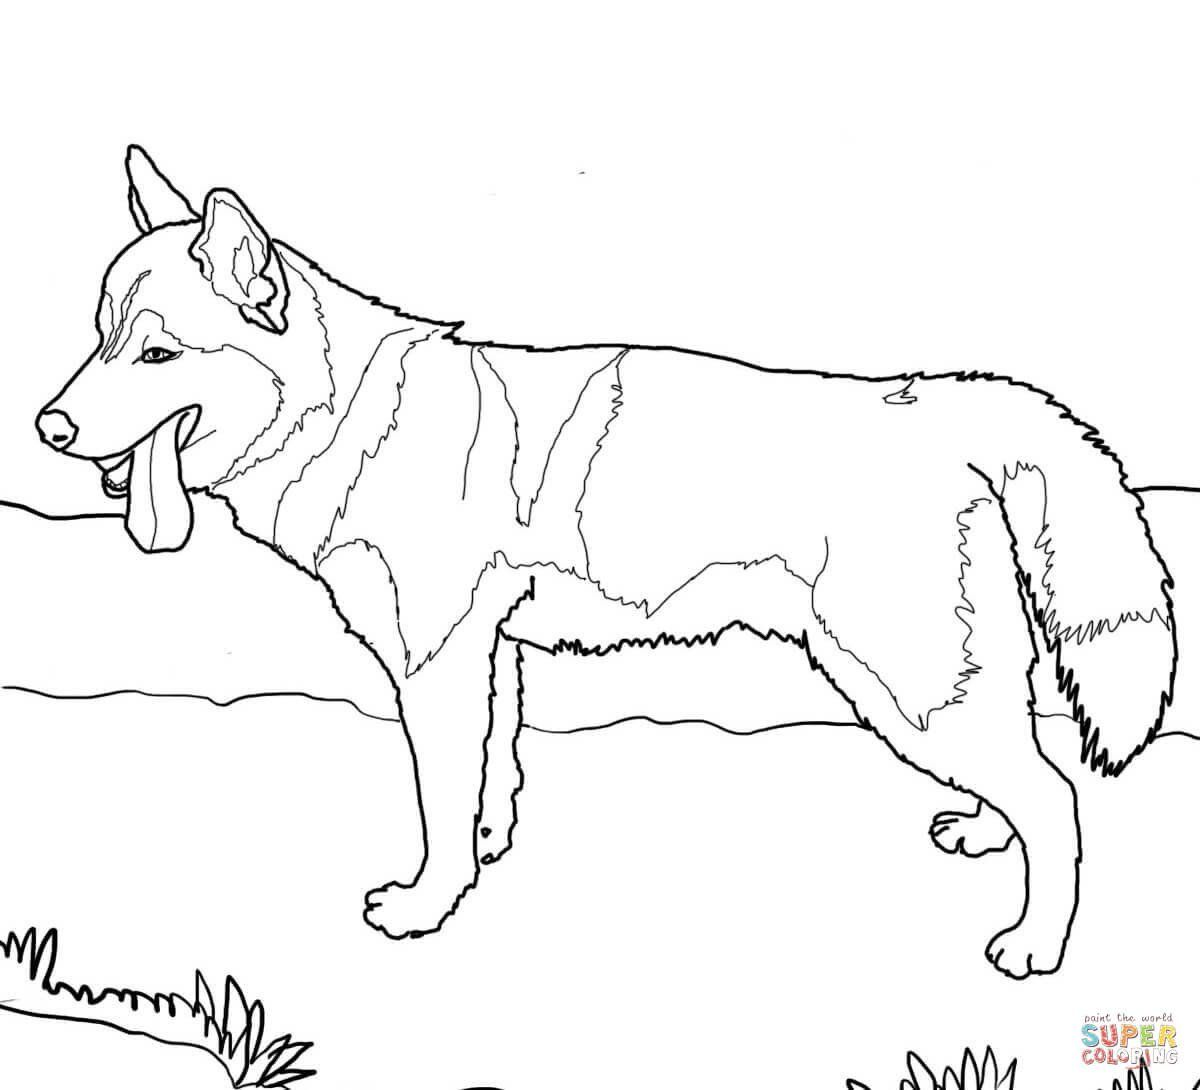 Realistic Dog Coloring Pages Fresh Coloring Printable Dog For Kids Tor Free Puppy In 2020 Dog Coloring Page Puppy Coloring Pages Husky Dogs